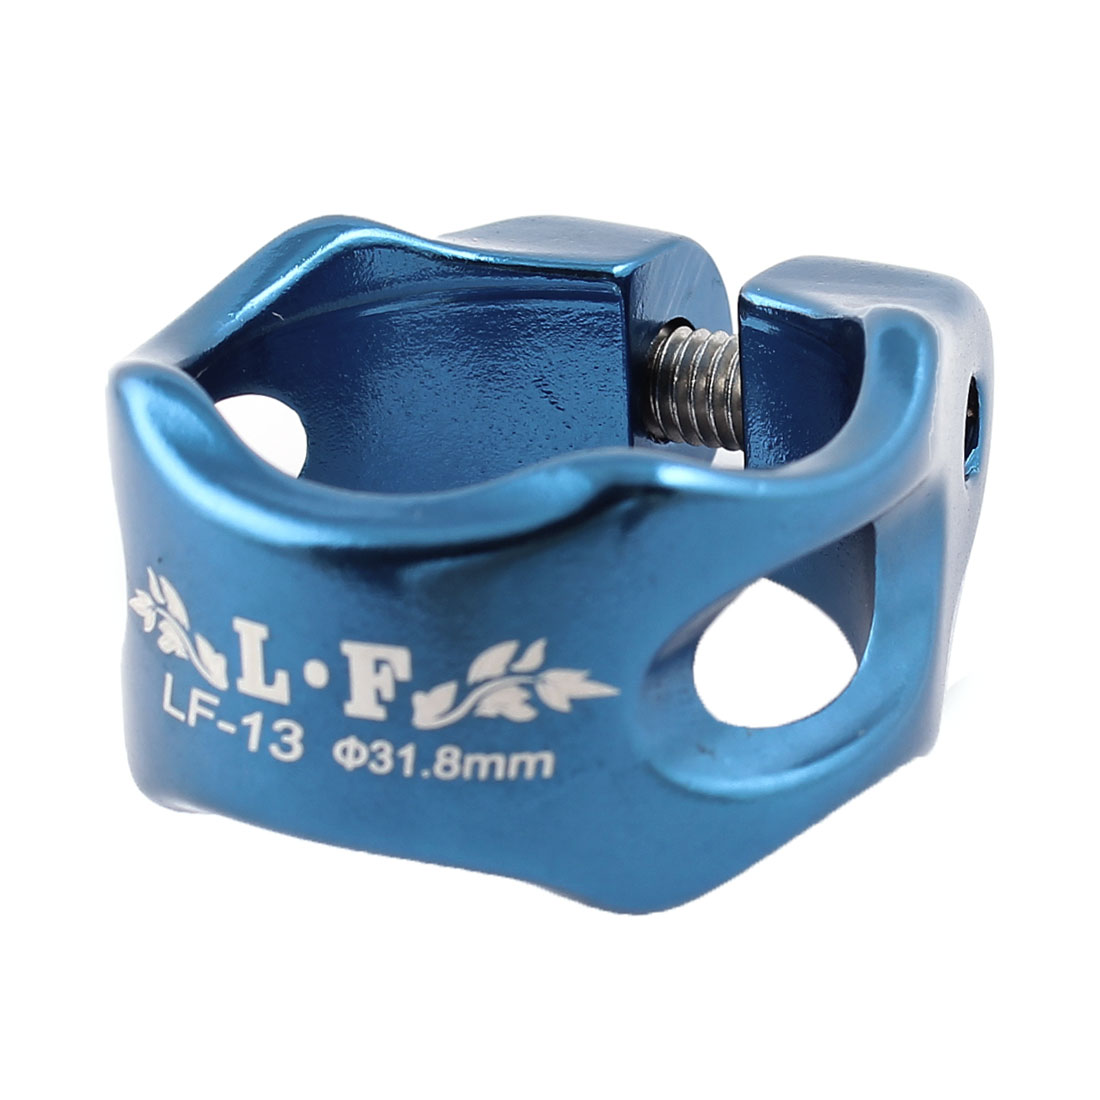 Authorized by LF Road Bike MTB Anodized Aluminium Alloy Seat Post Seatpost Clamp 31.8mm Blue